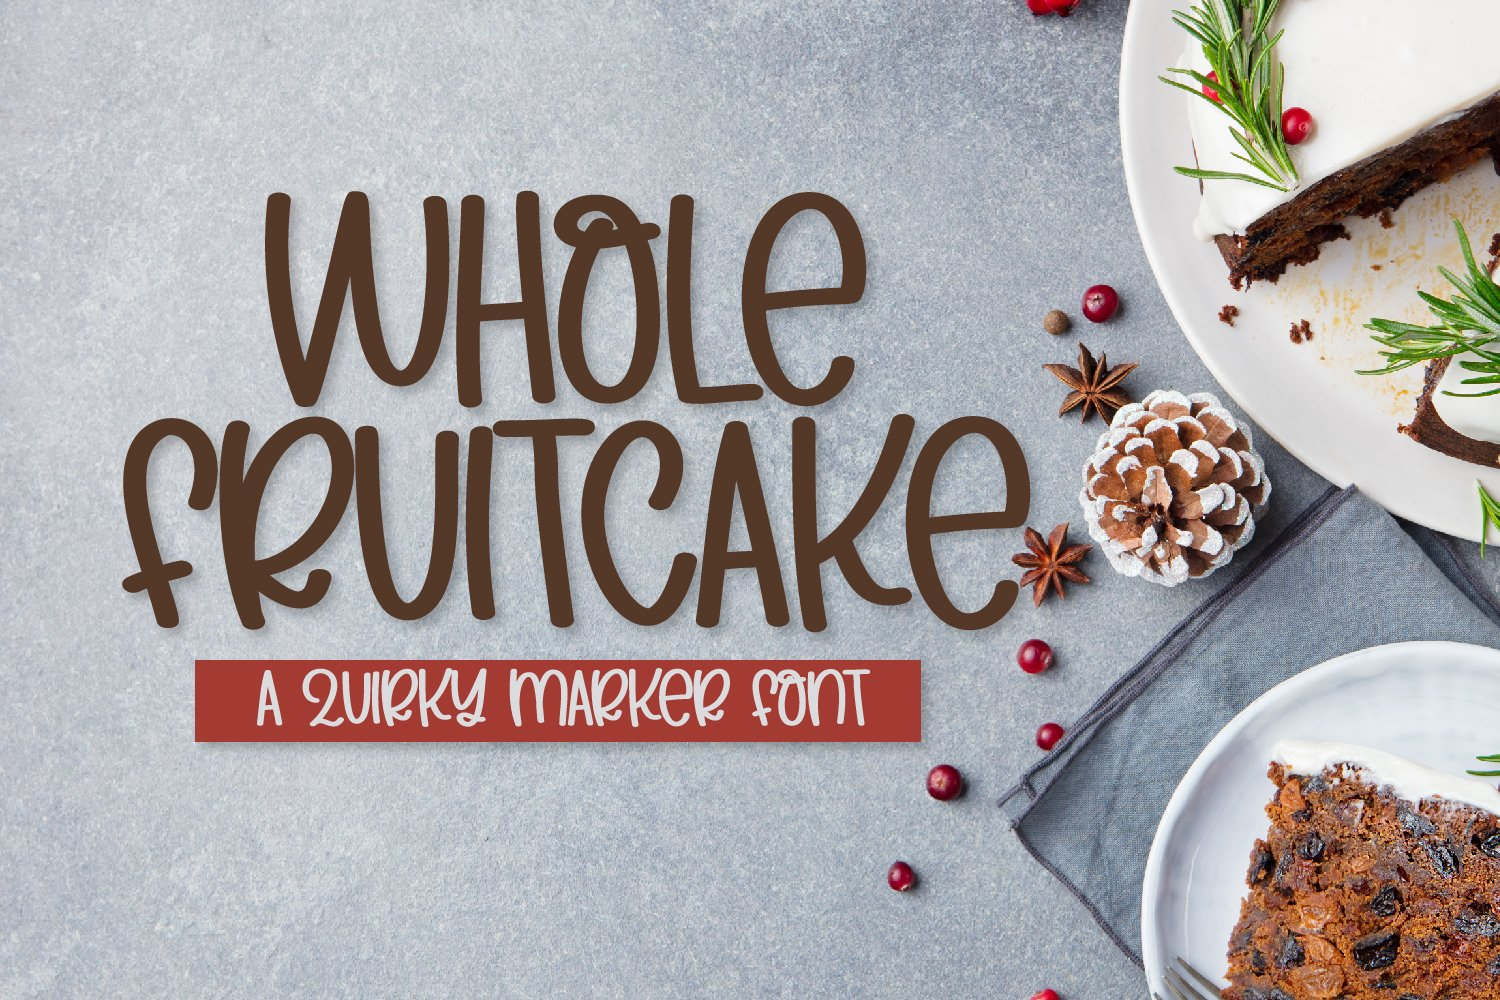 Whole Fruitcake - A Silly Marker Font example image 1